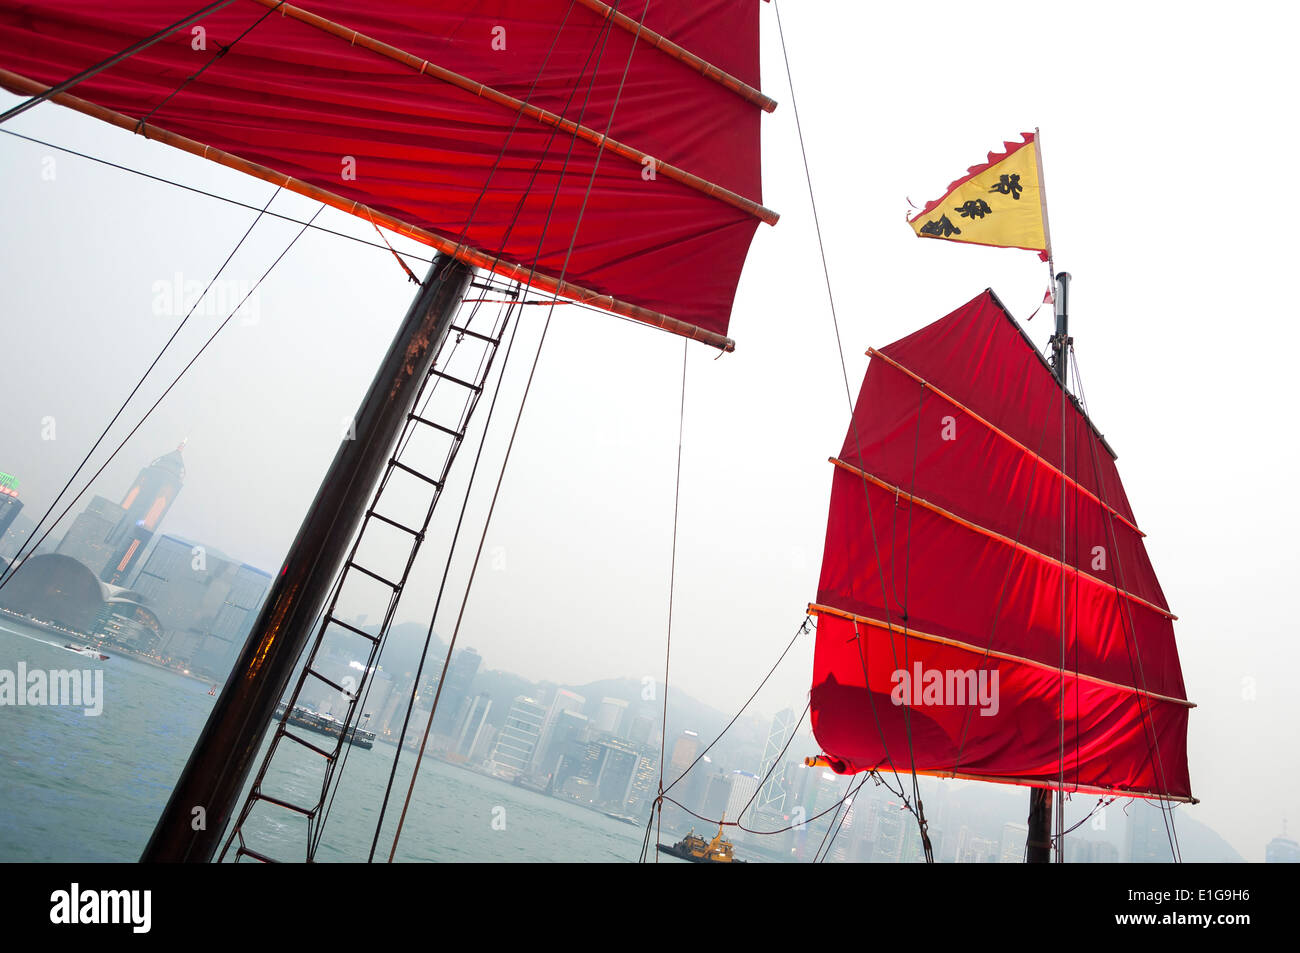 Traditional Red-Sailed Chinese junk in Victoria Harbour, Hong Kong - Stock Image